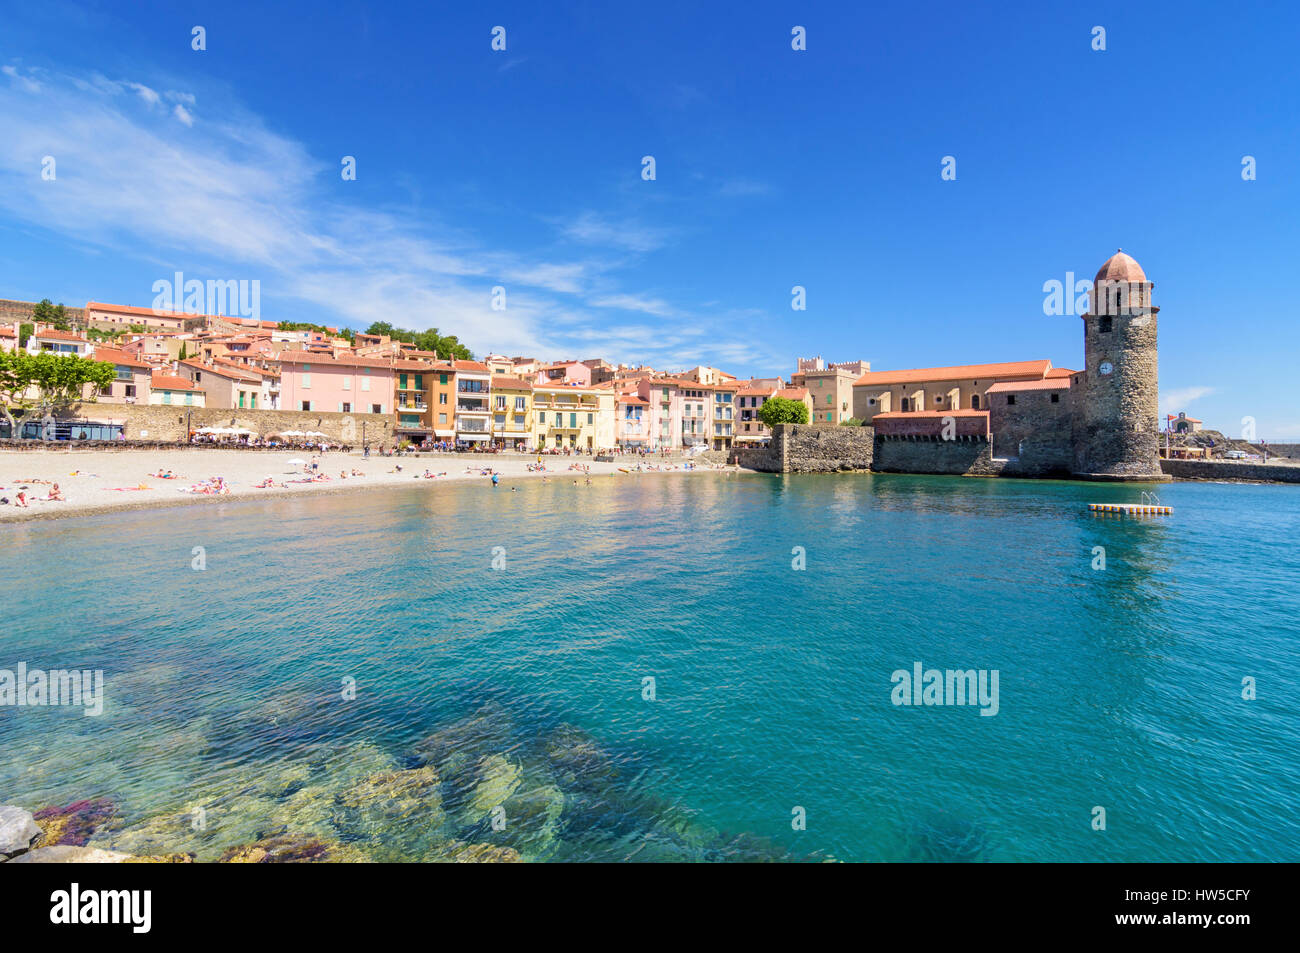 Collioure holidaymakers on Boramar Beach overlooked by the Notre Dame des Anges, Collioure, Côte Vermeille, - Stock Image